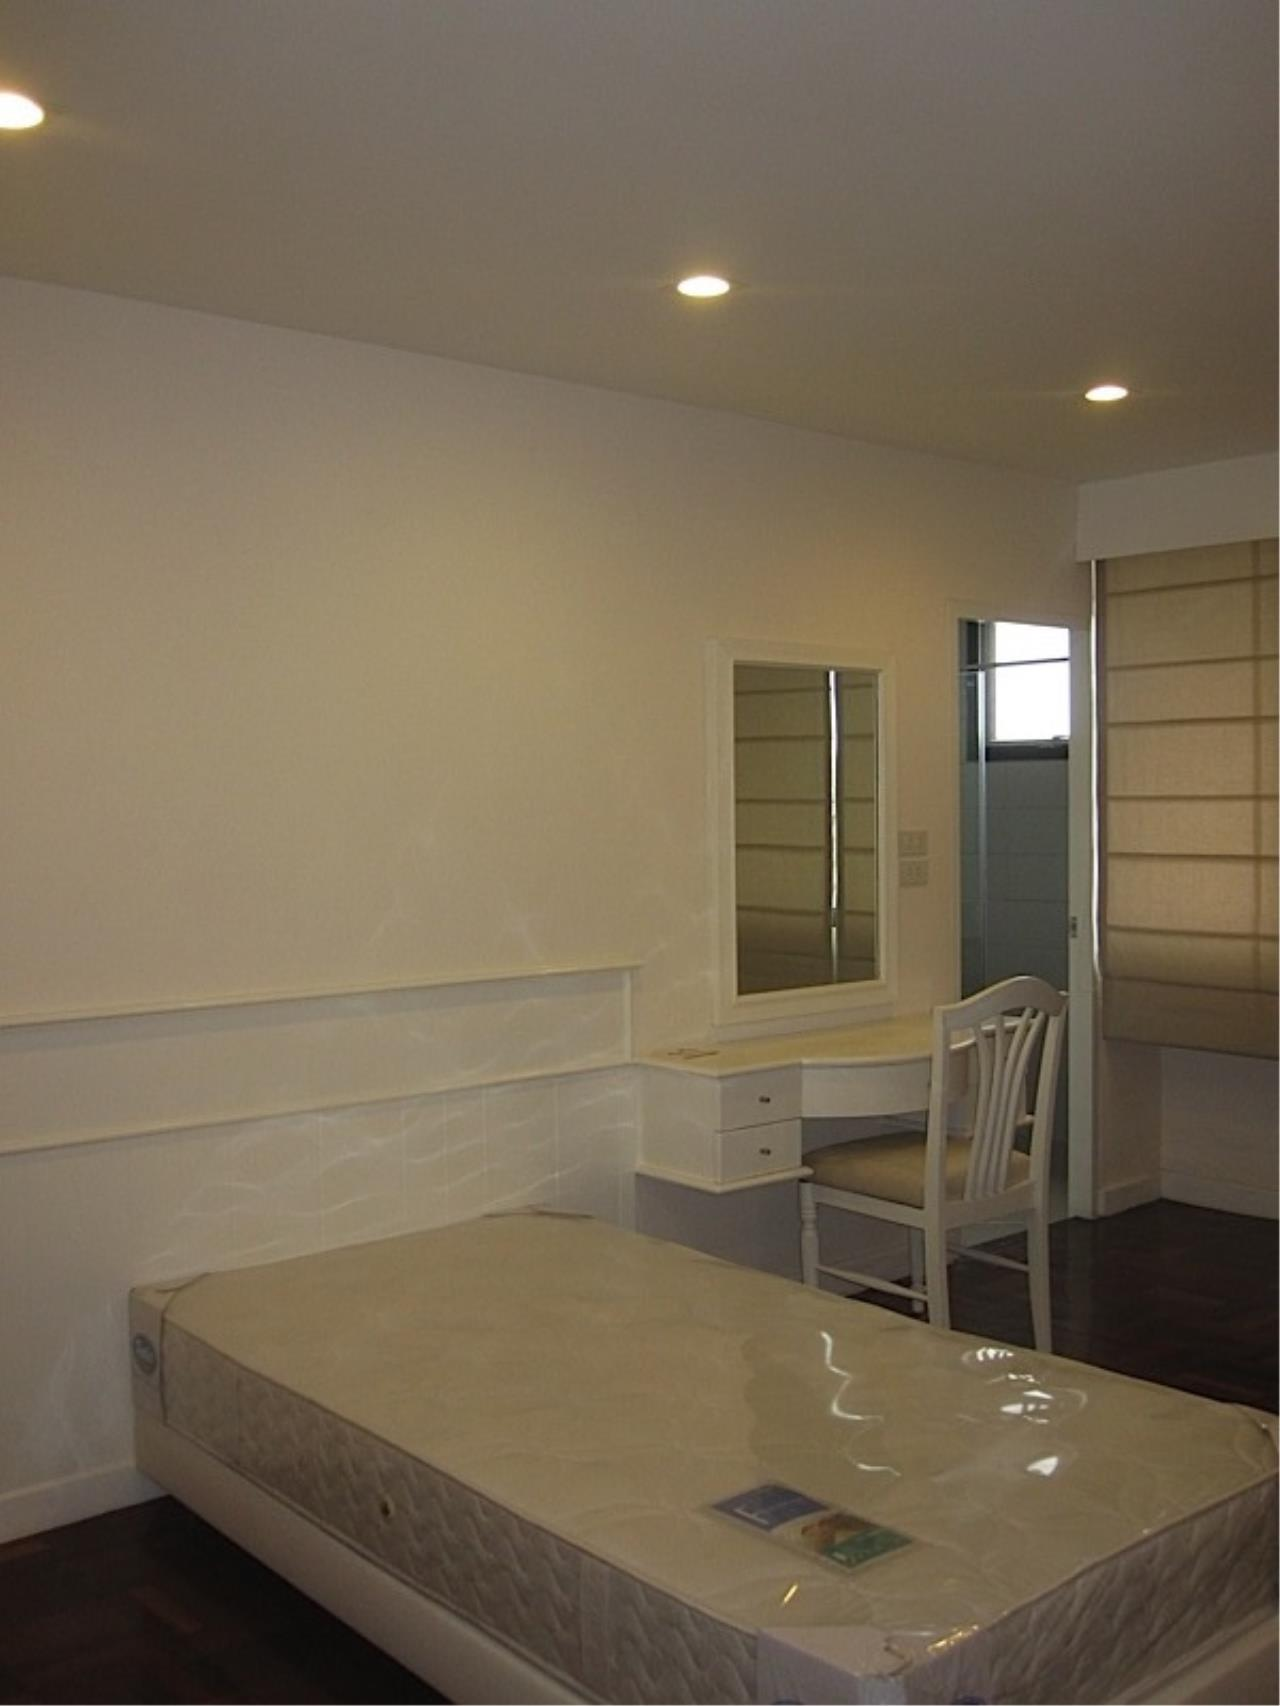 Piri Property Agency's The Habitat - 3 bedroom unit - Just Renovated 2